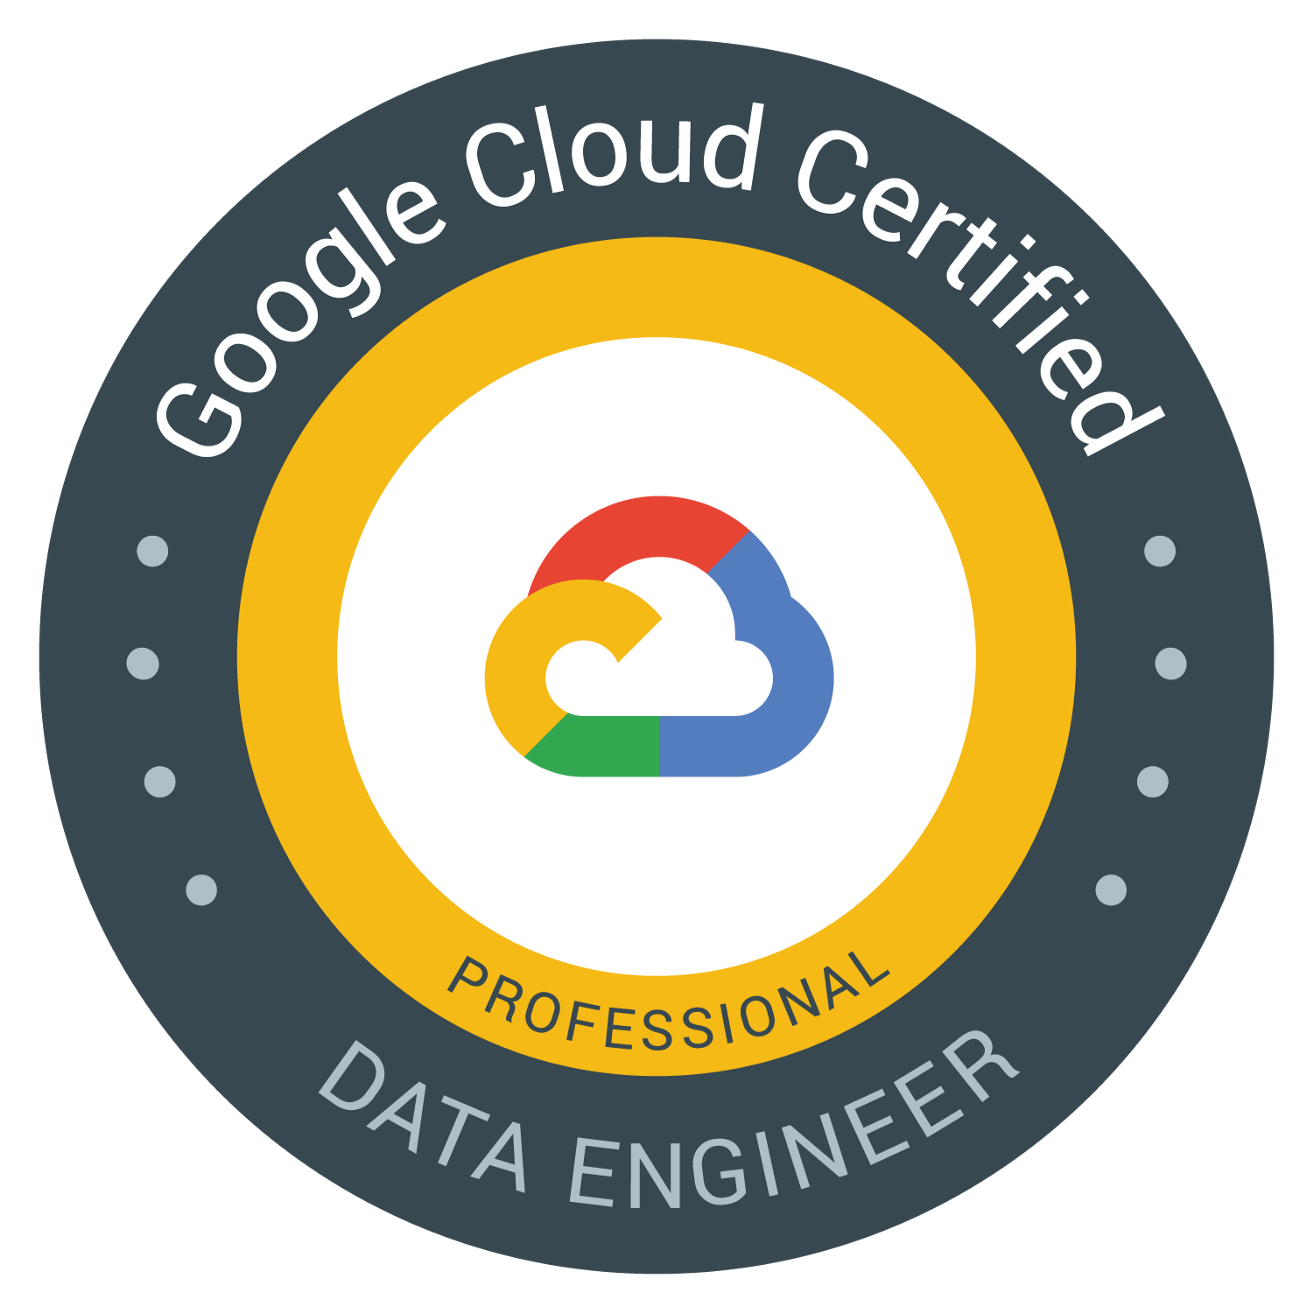 A Study Guide to the Google Cloud Professional Data Engineer